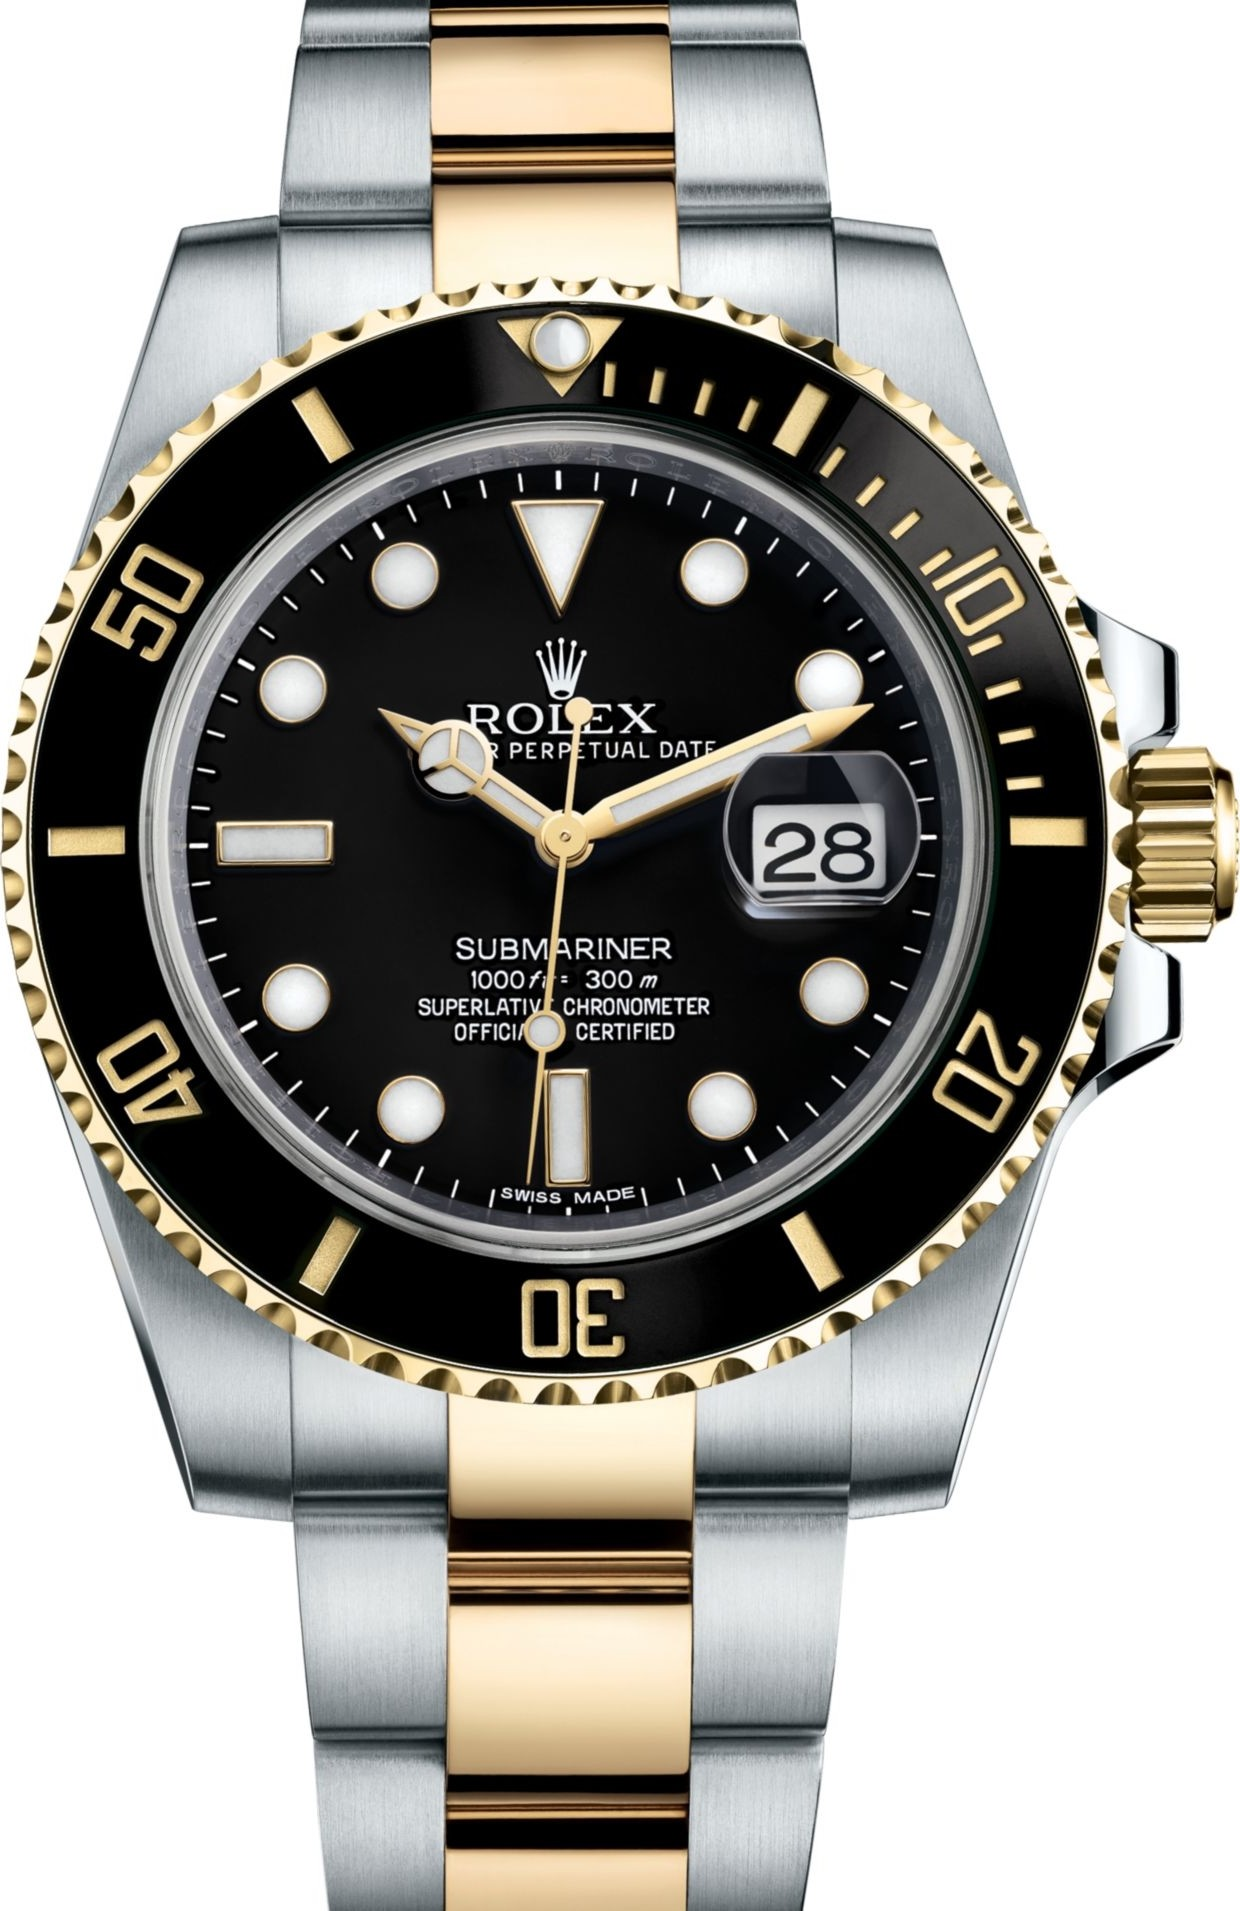 ROLEX SUBMARINER 116613-BLKDD WATCH 40